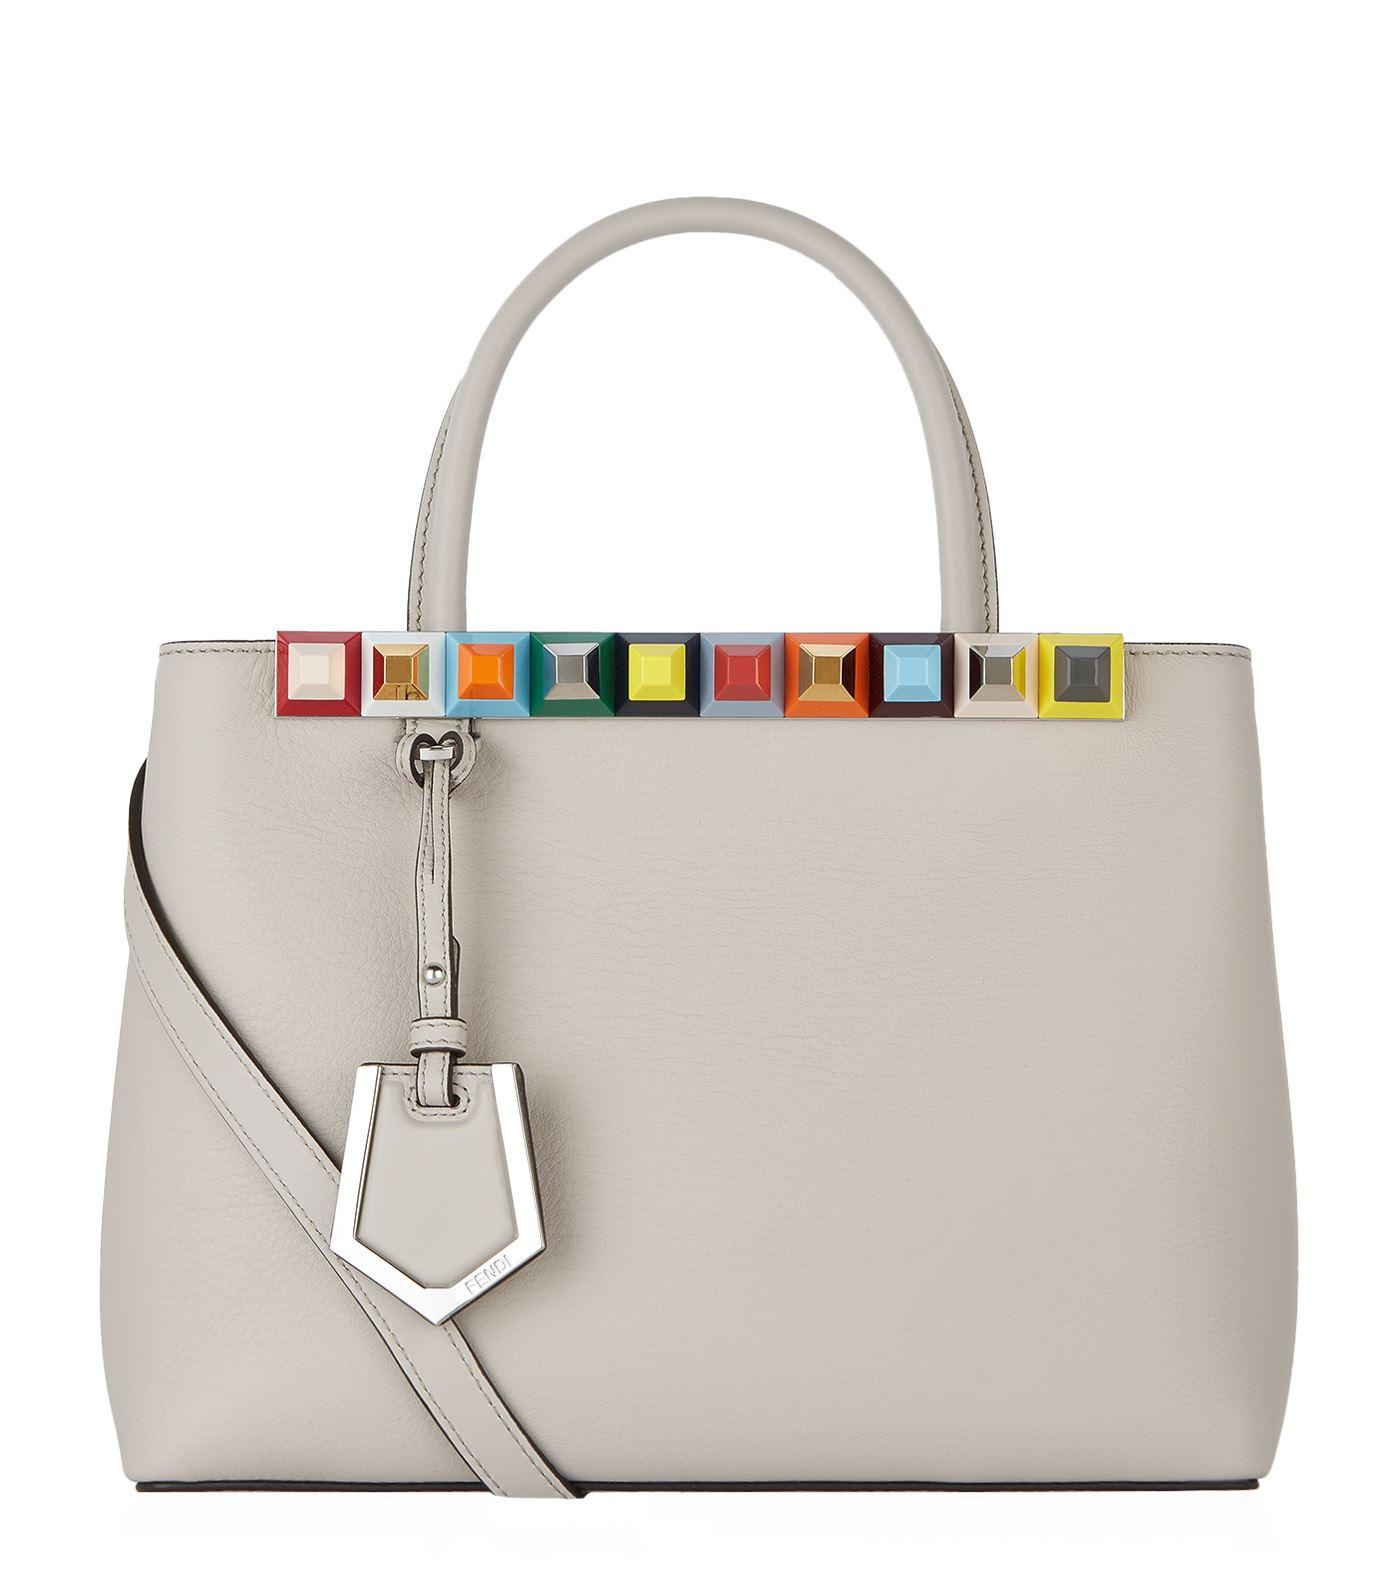 cadfc36d6574 Fendi 2Jours Studded Shopper Tote Bag In Grey